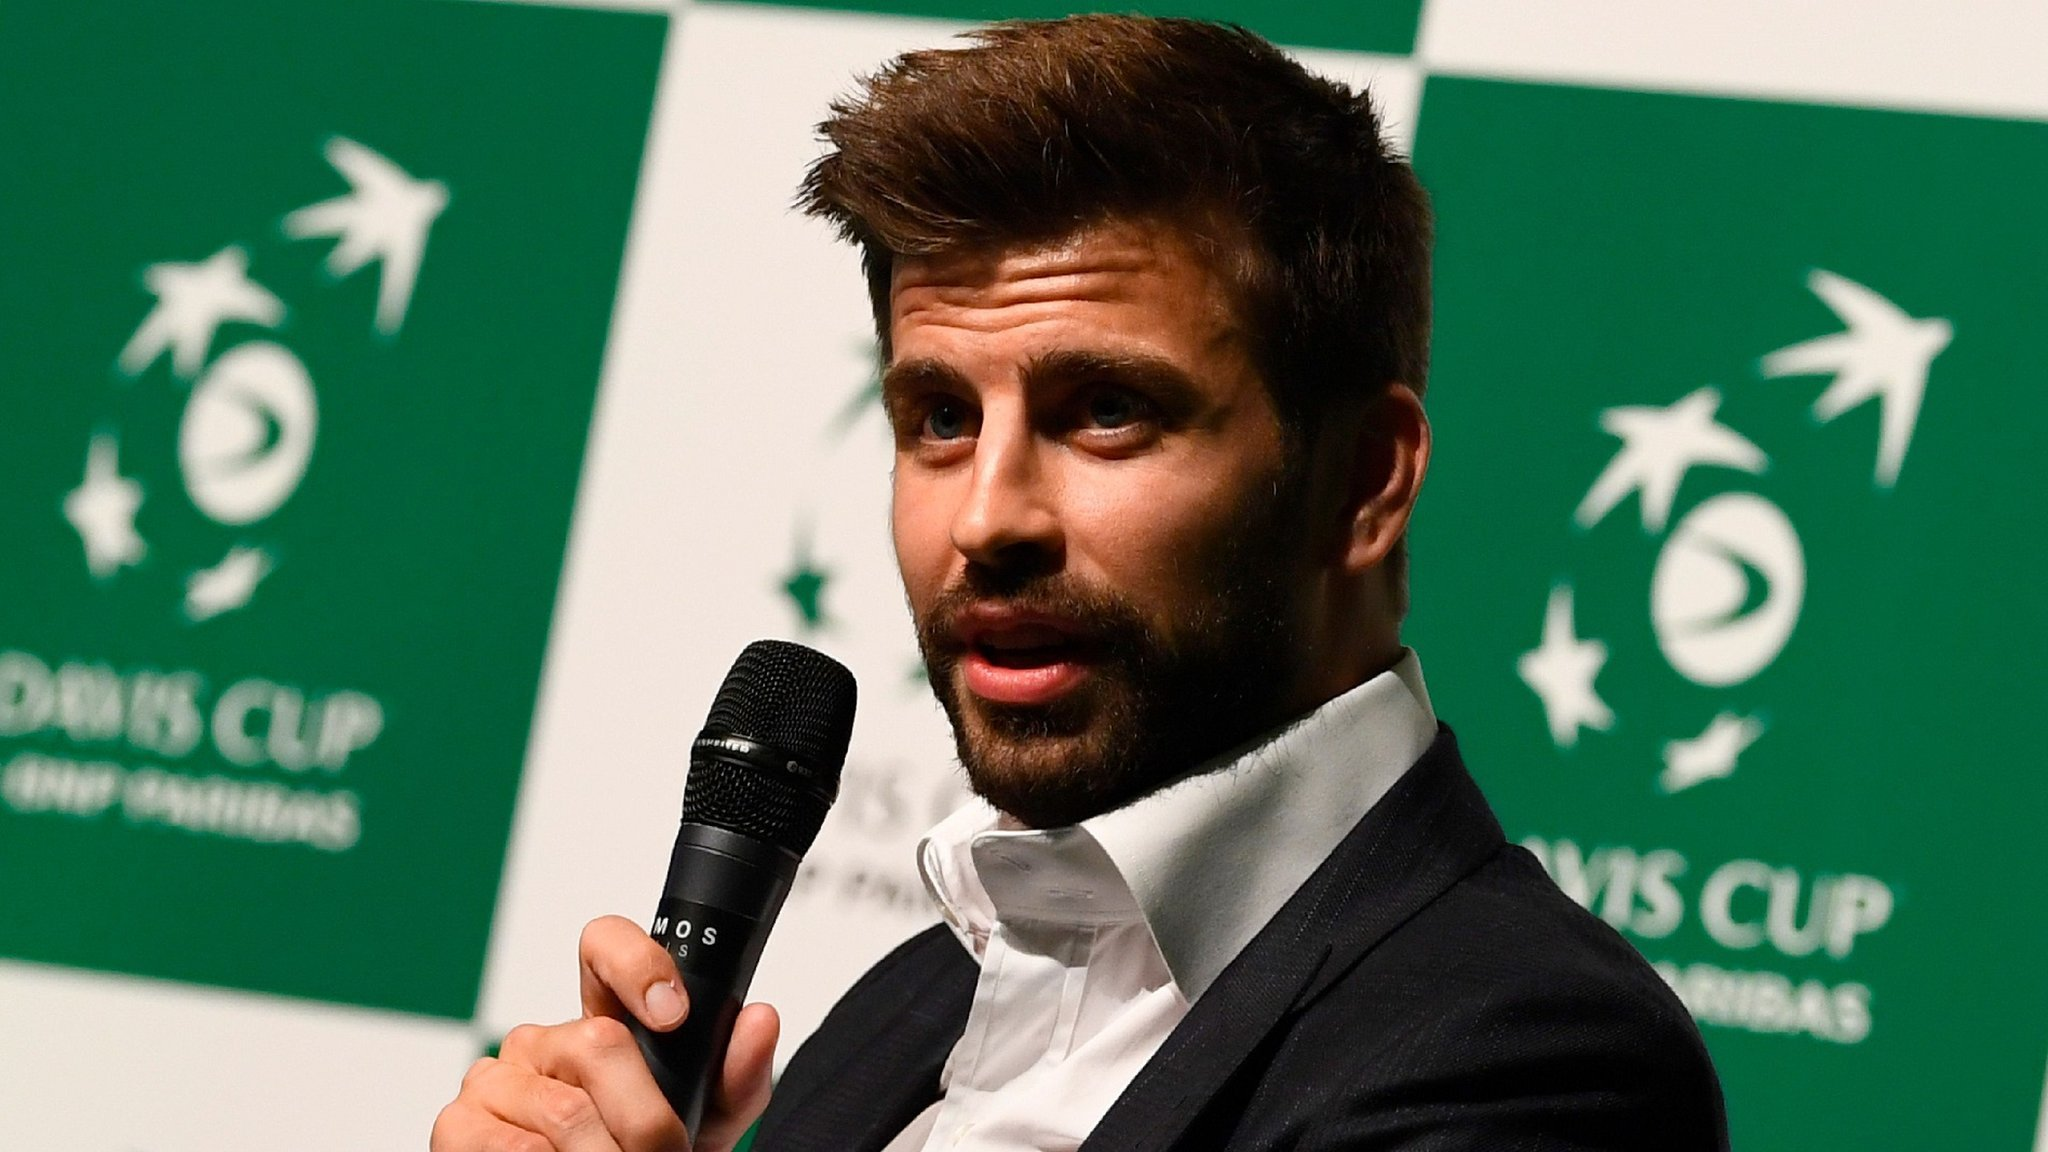 Pique 'will prove Davis Cup critics wrong'